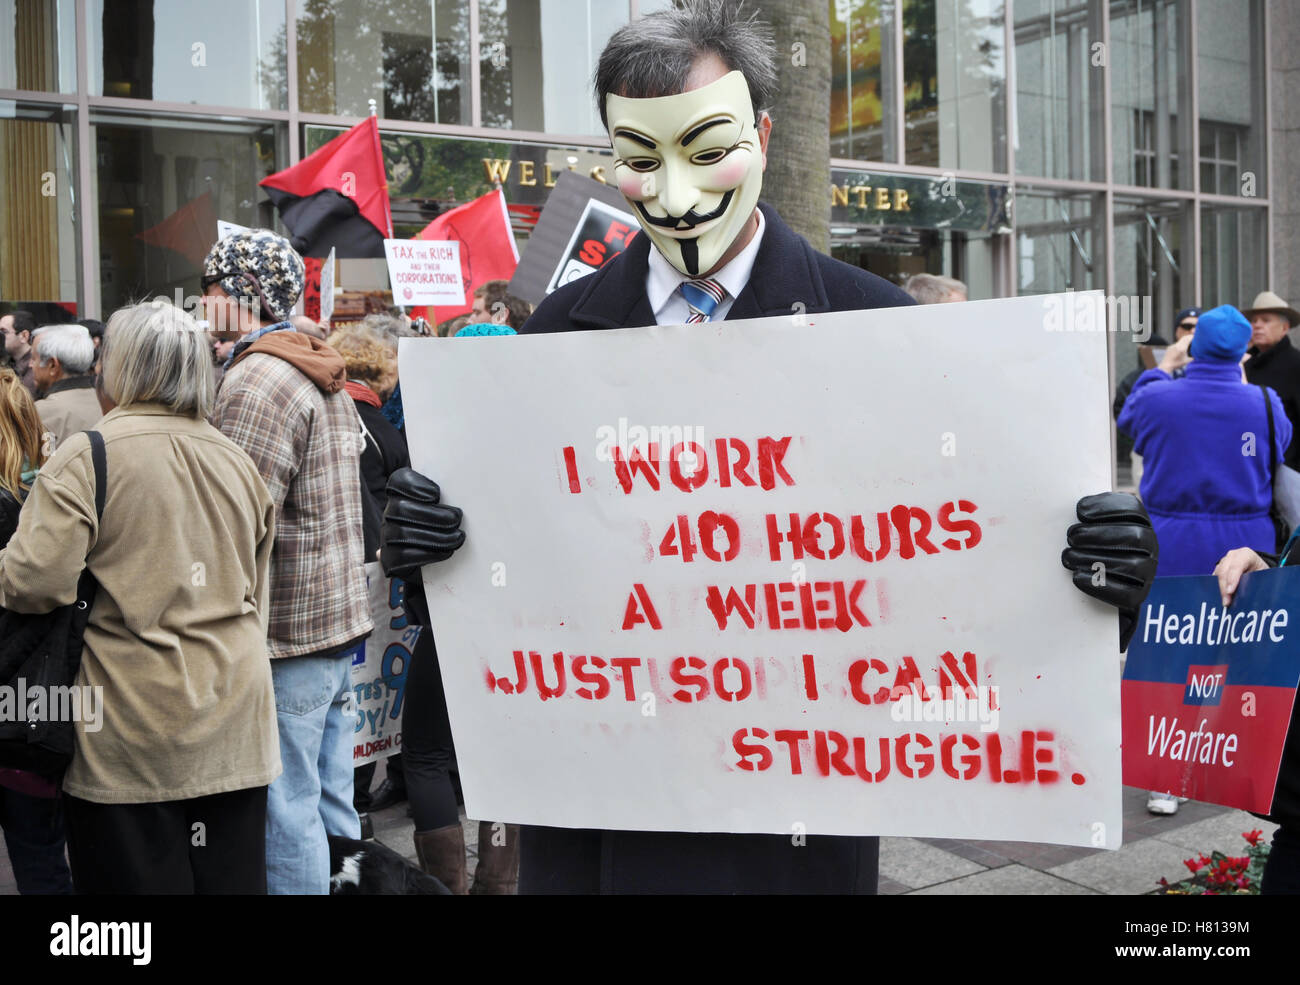 A protester in a Guy Fawkes mask holds a sign reading' I work 40 hours a week just to struggle' at a bank - Stock Image